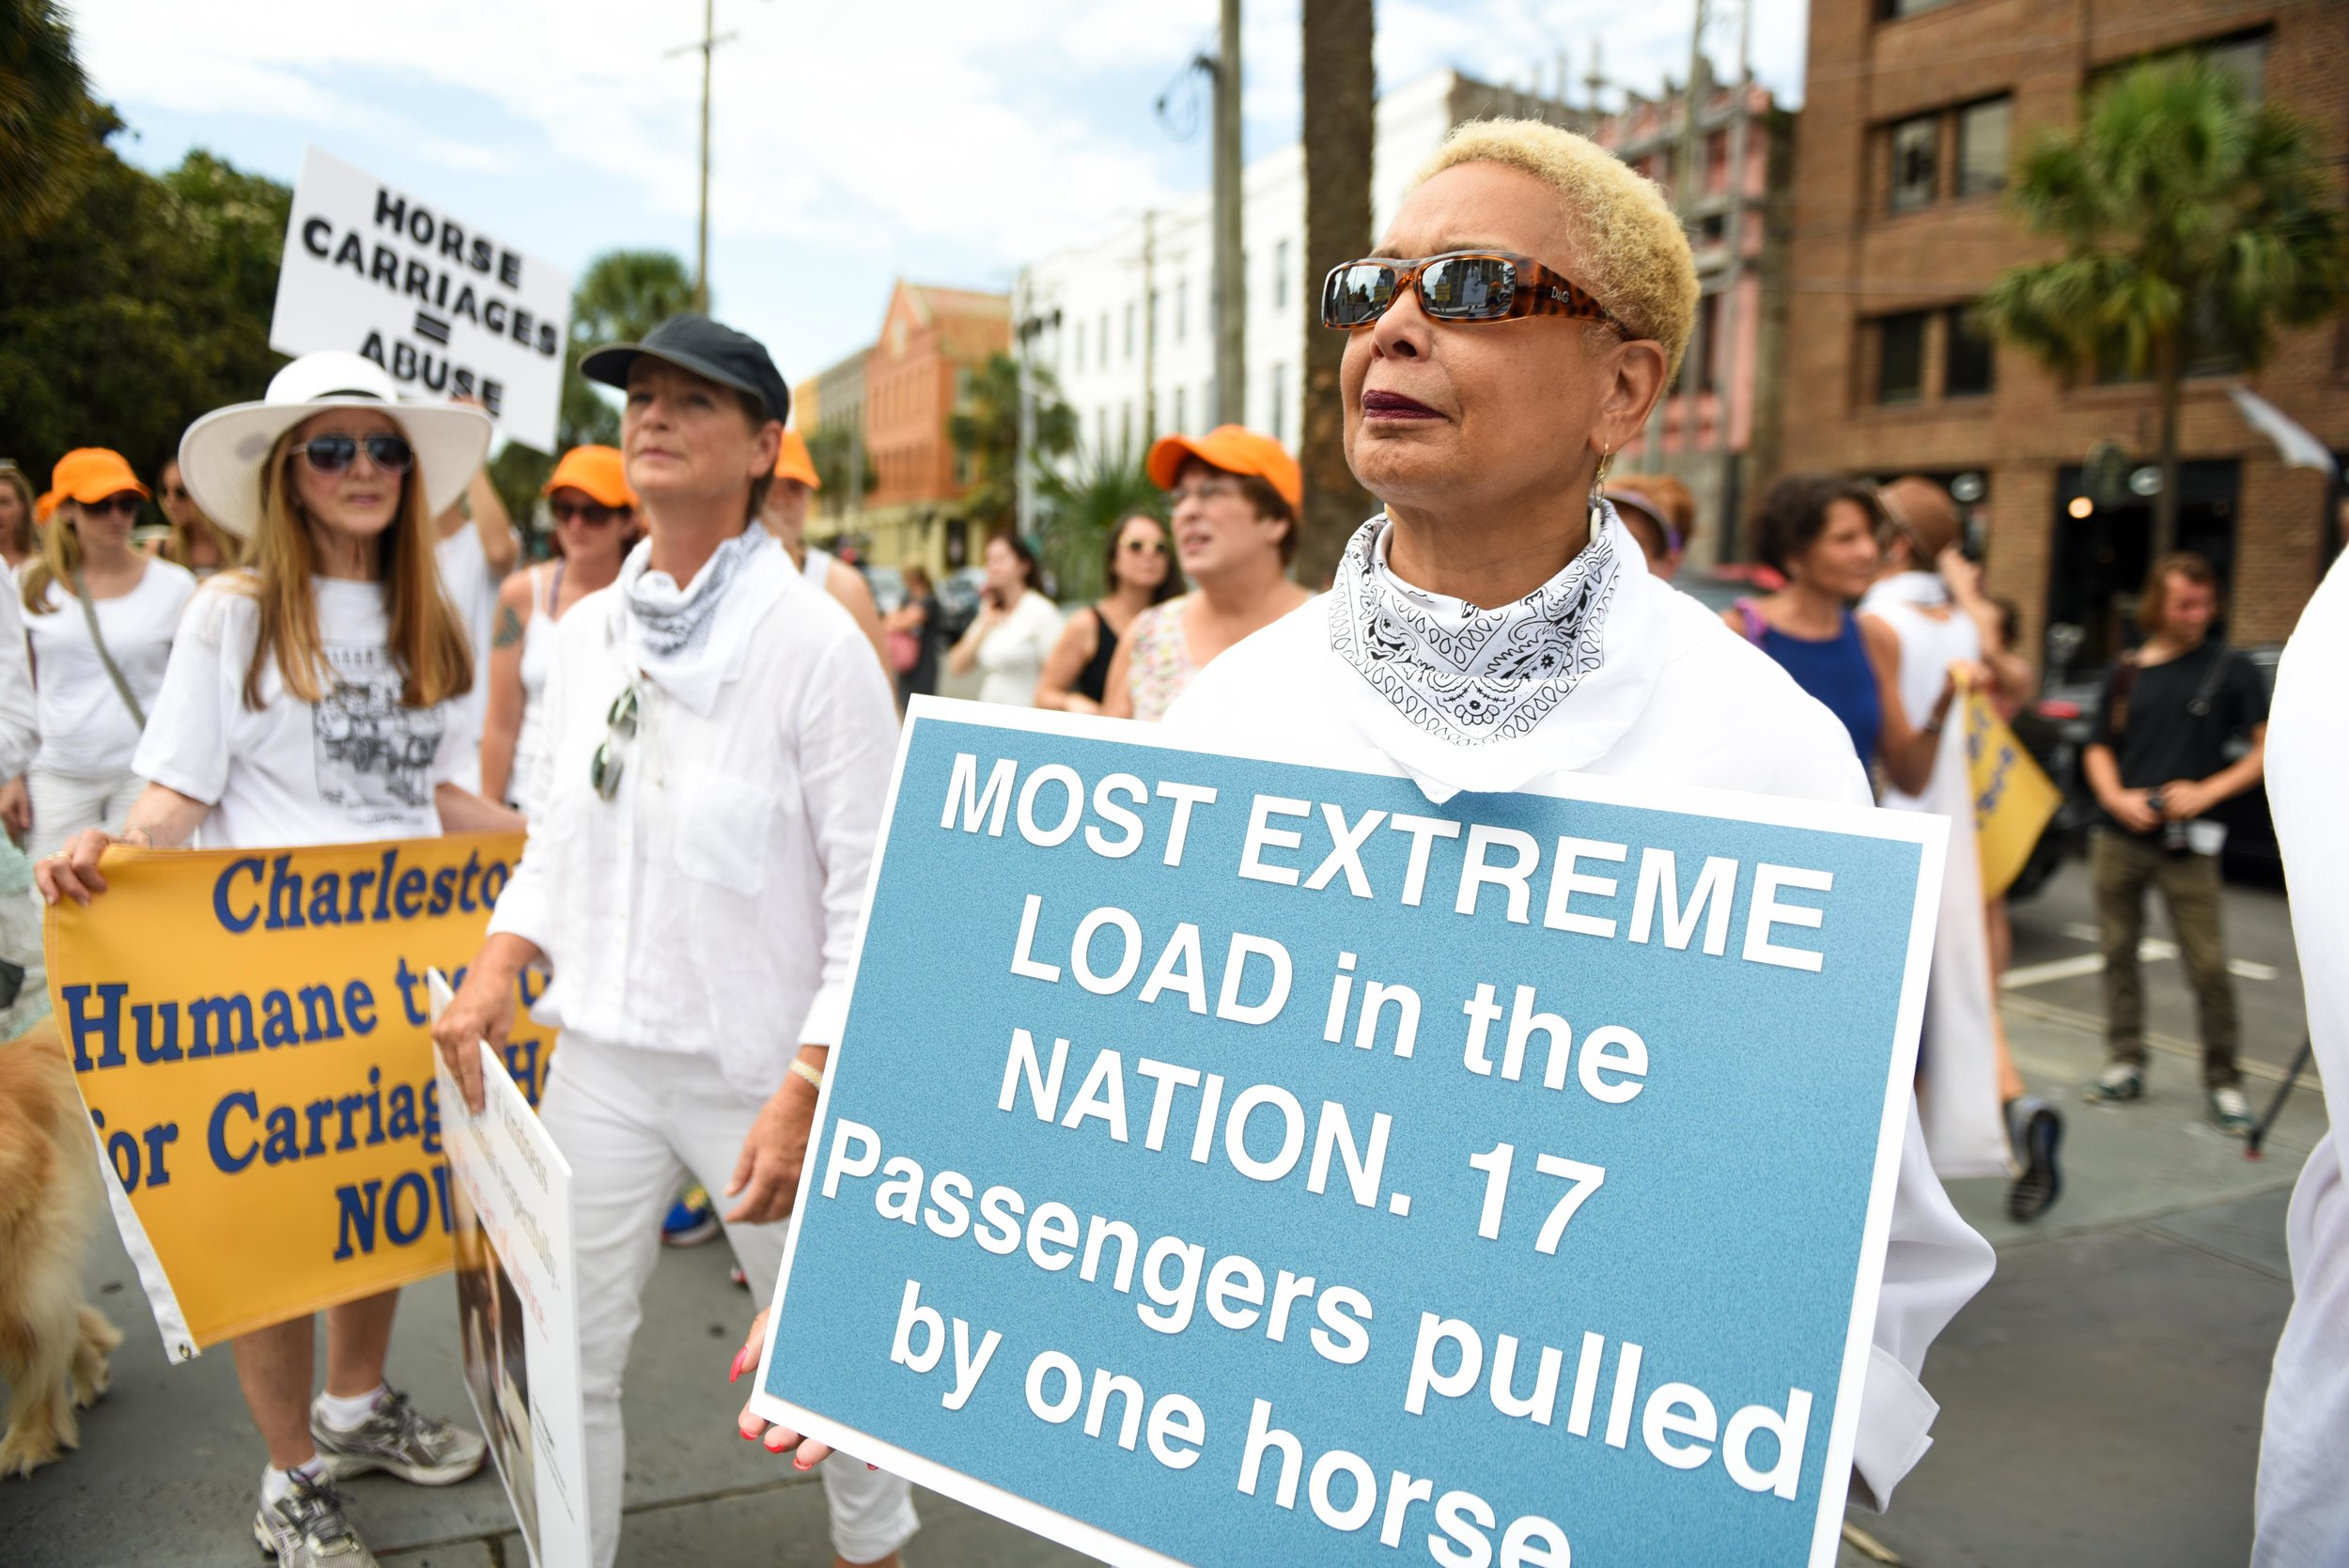 Take Action: - Stay informed on what's happening and become an advocate in the community. Since February 2016 alone, there have been over 54 carriage-related incidents. Charleston's carriage animals need your voice. Click on the button below to help take action! Below are also links to find & follow us on Facebook, Twitter and Instagram.